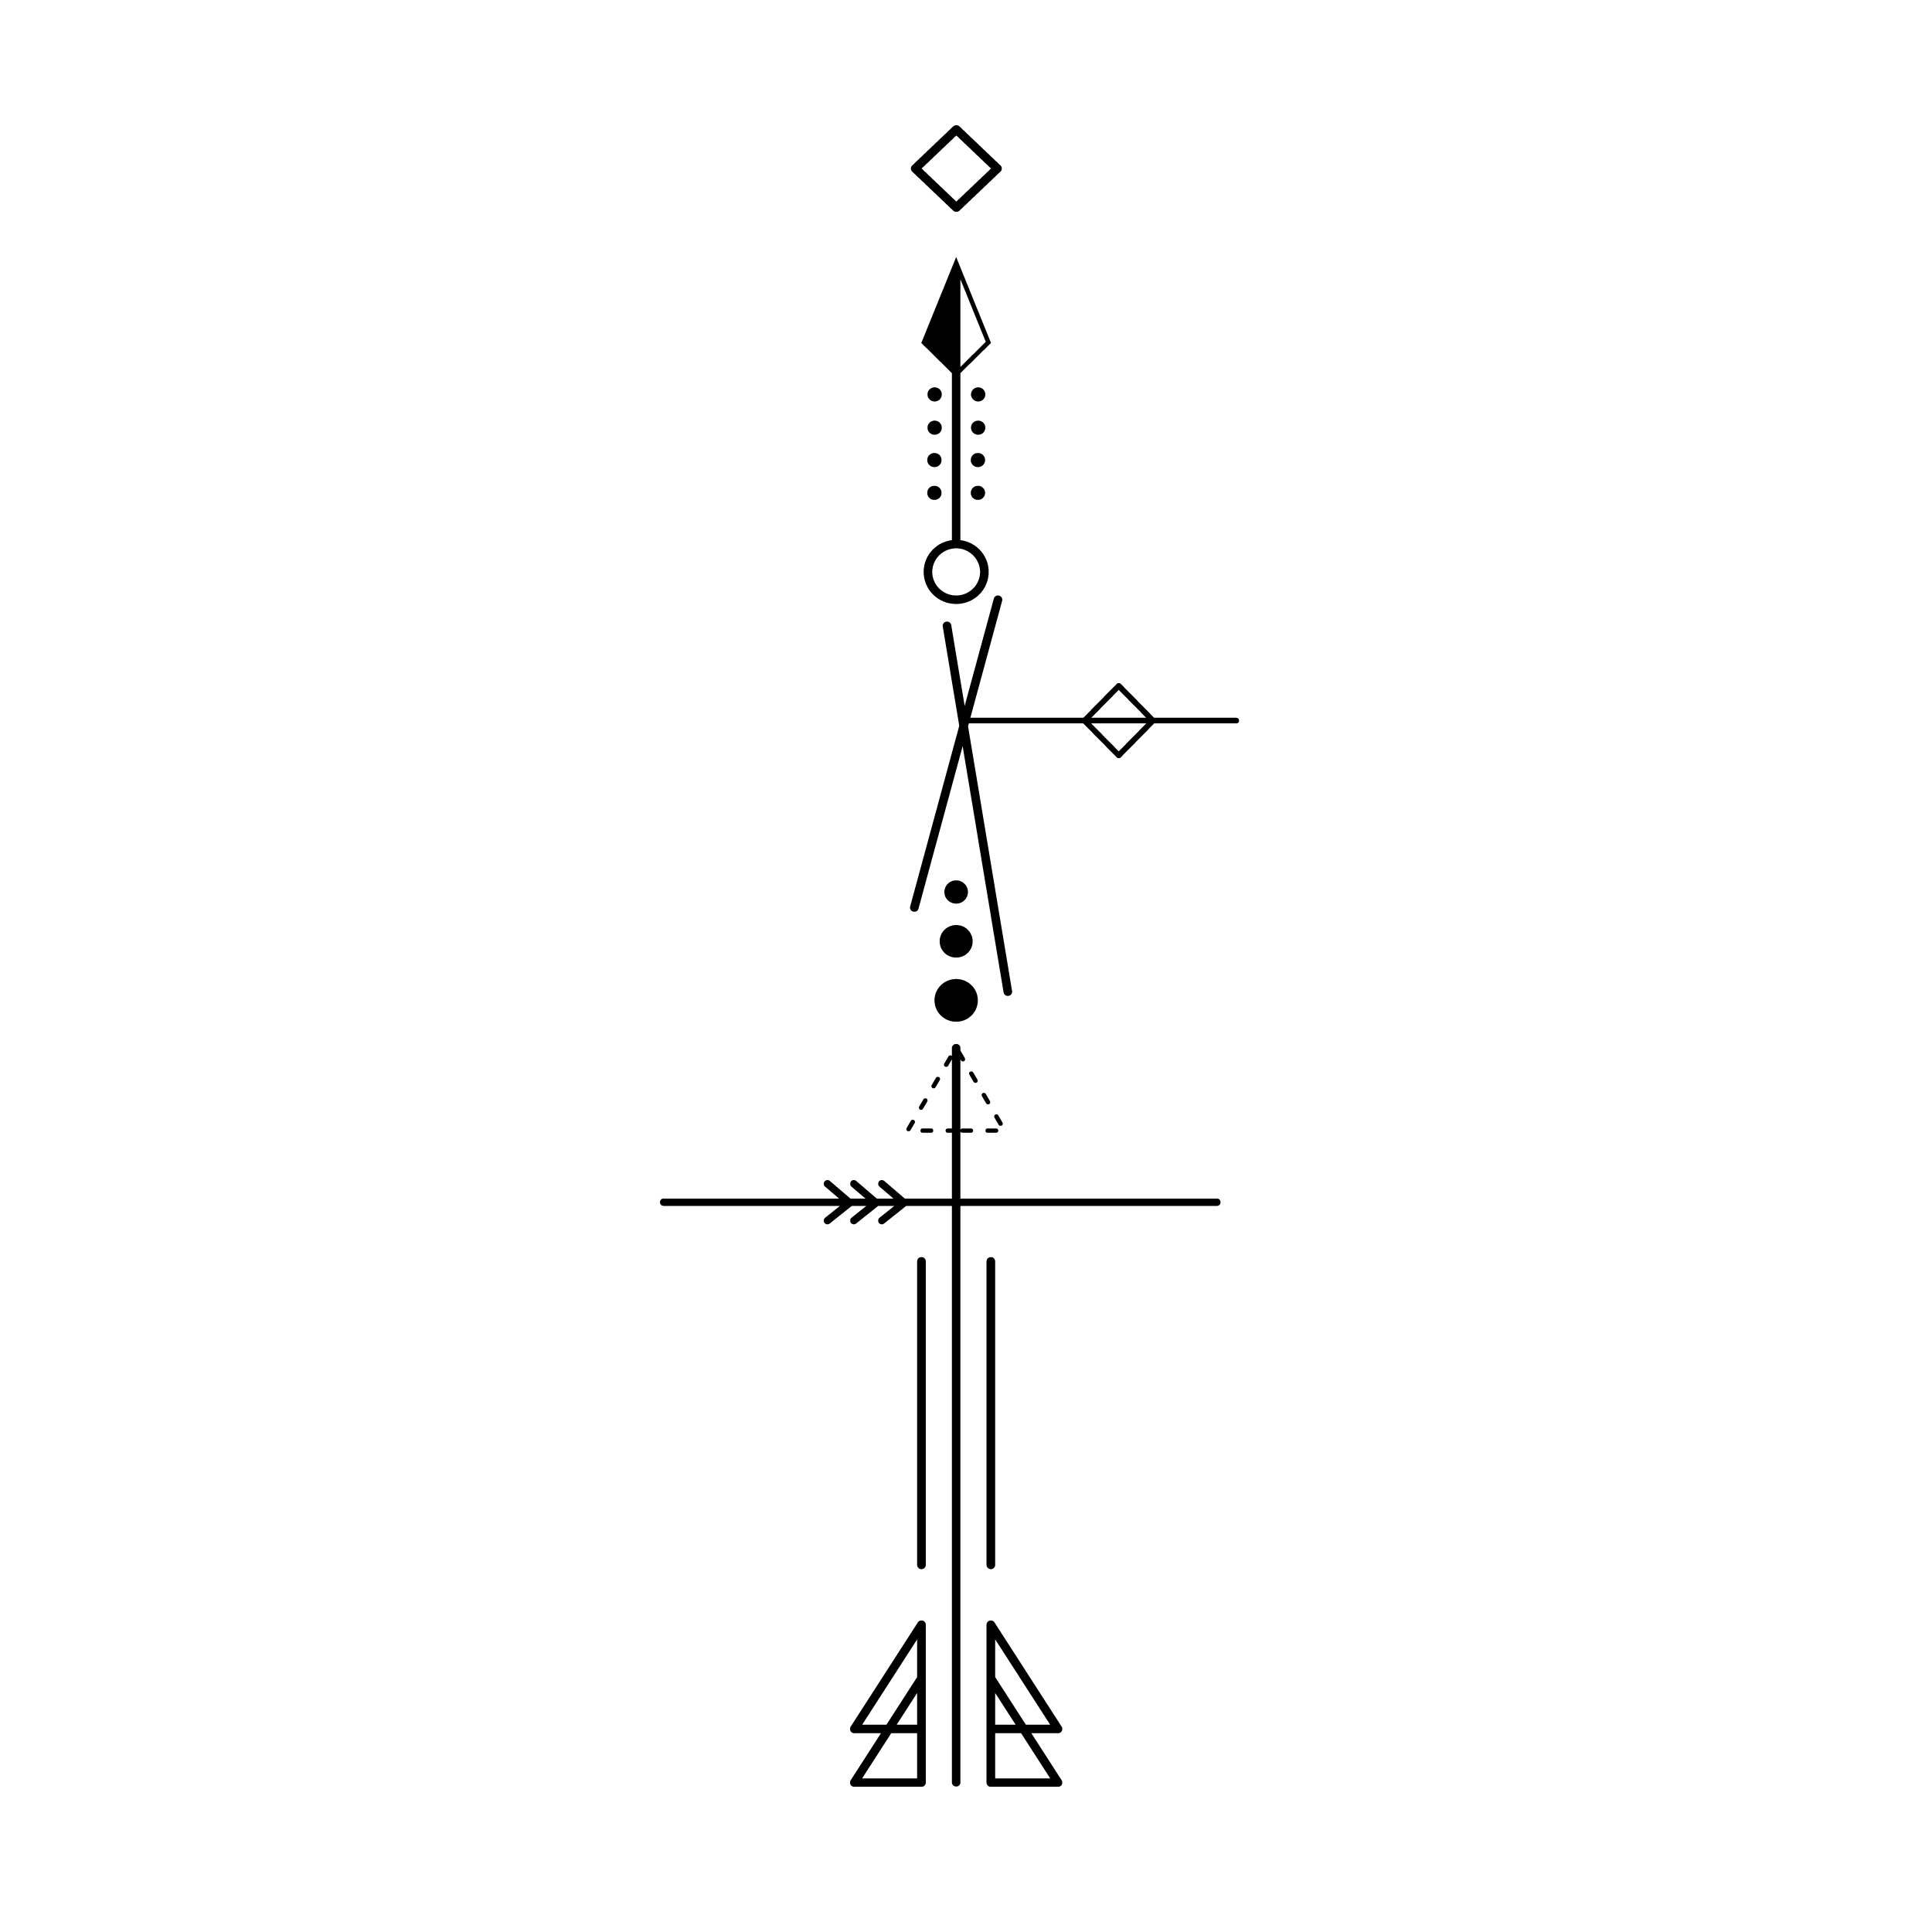 Arrow3 Temporary Tatoo Design. Tags: Minimal, Black and White, Patterns, Arrows